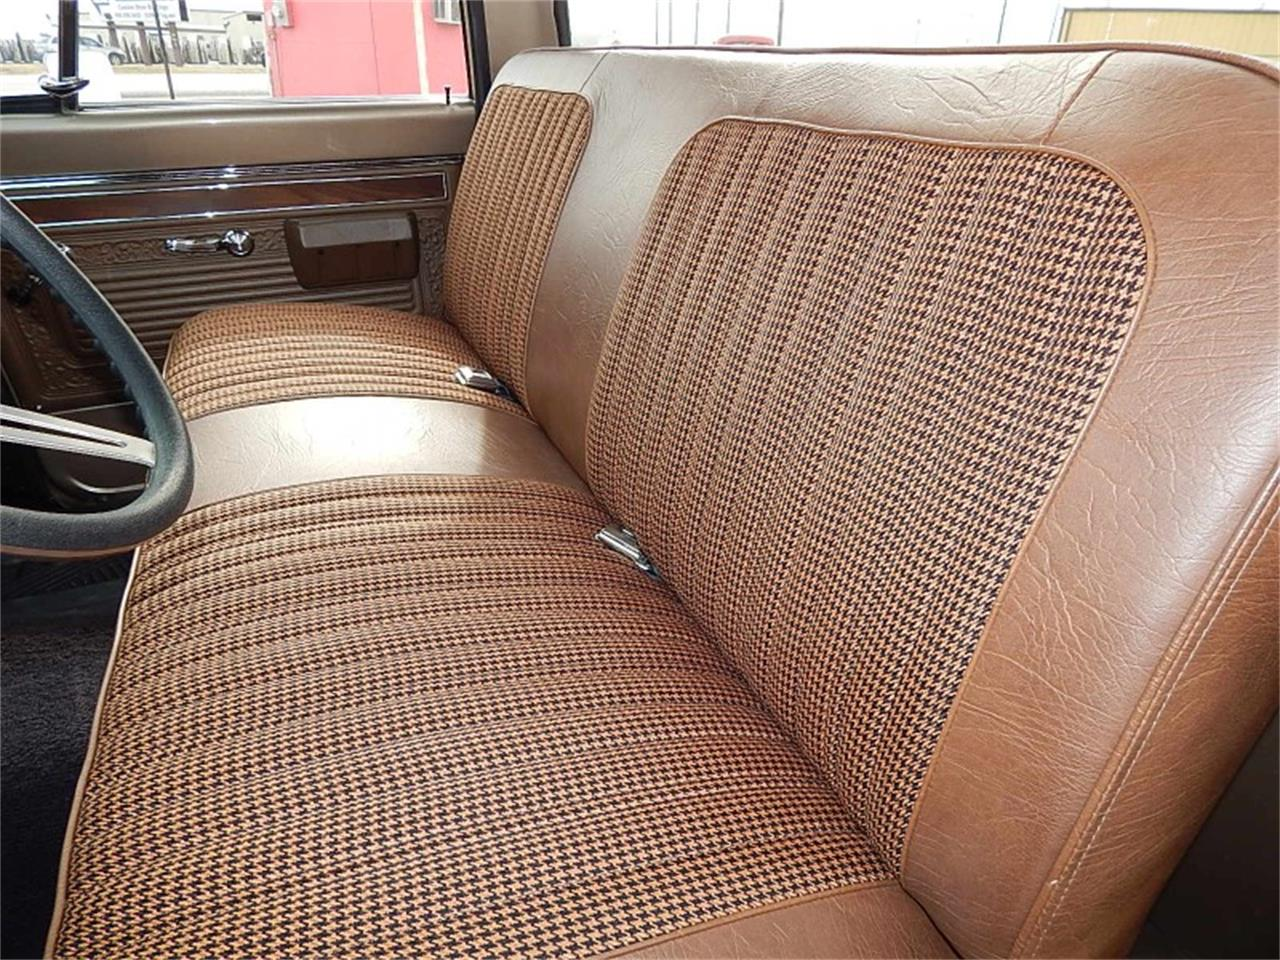 Large Picture of 1970 Chevrolet C10 located in Louisiana Auction Vehicle - PVL4